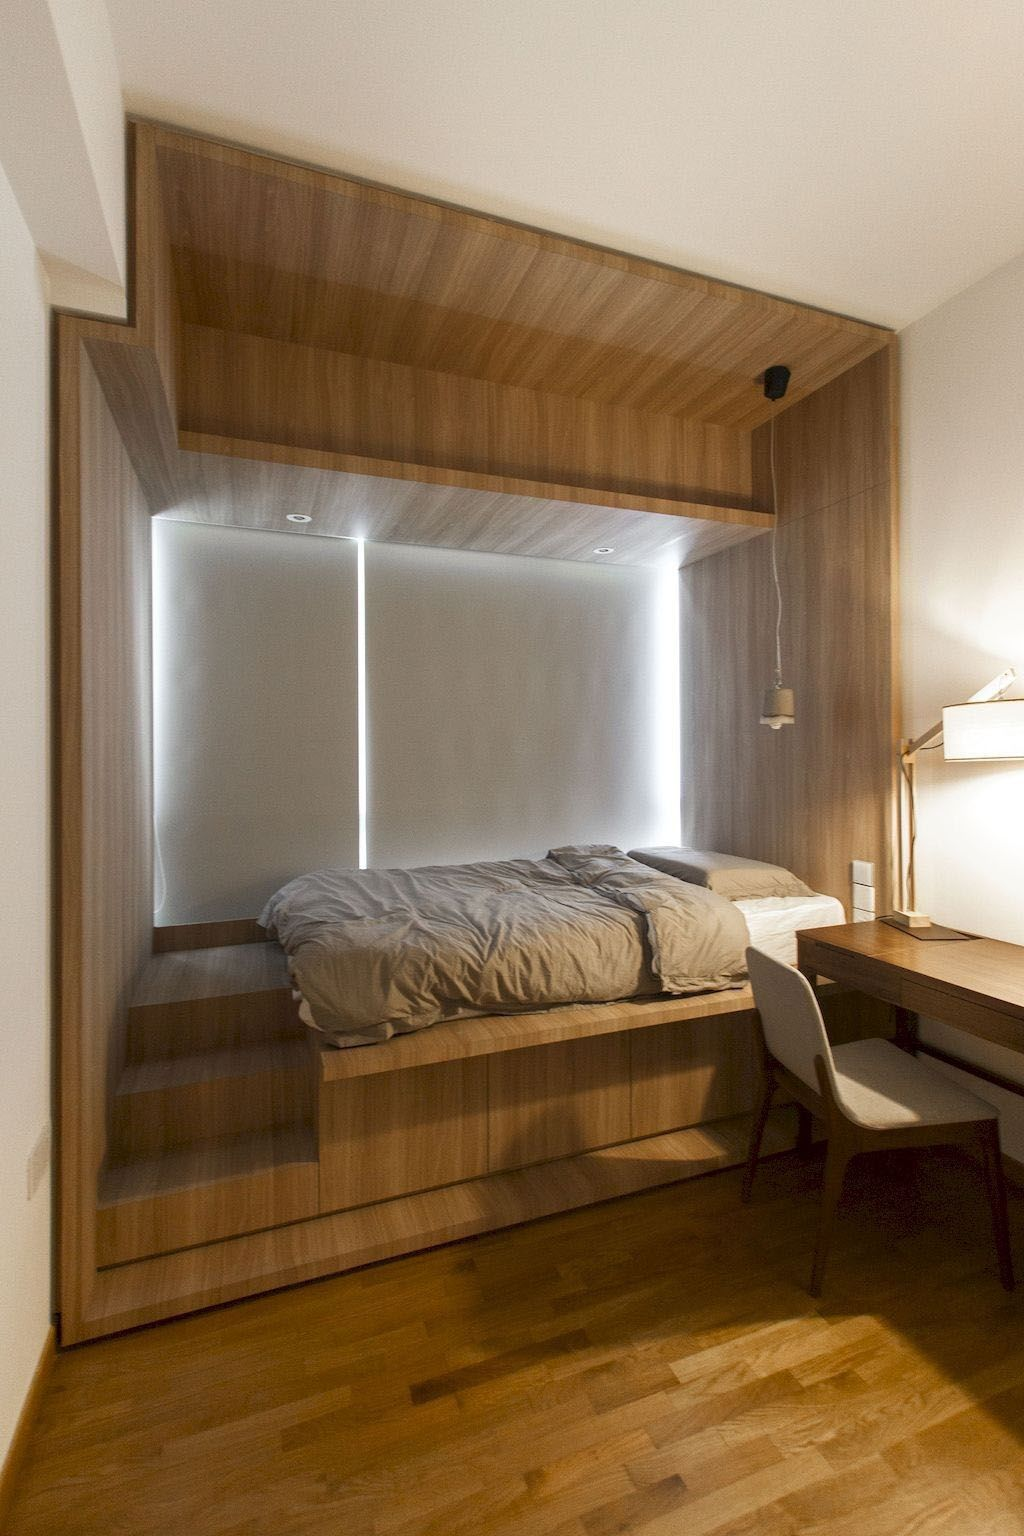 Stunning Low Budget Decor Ideas For Small Master Bedroom You Ll